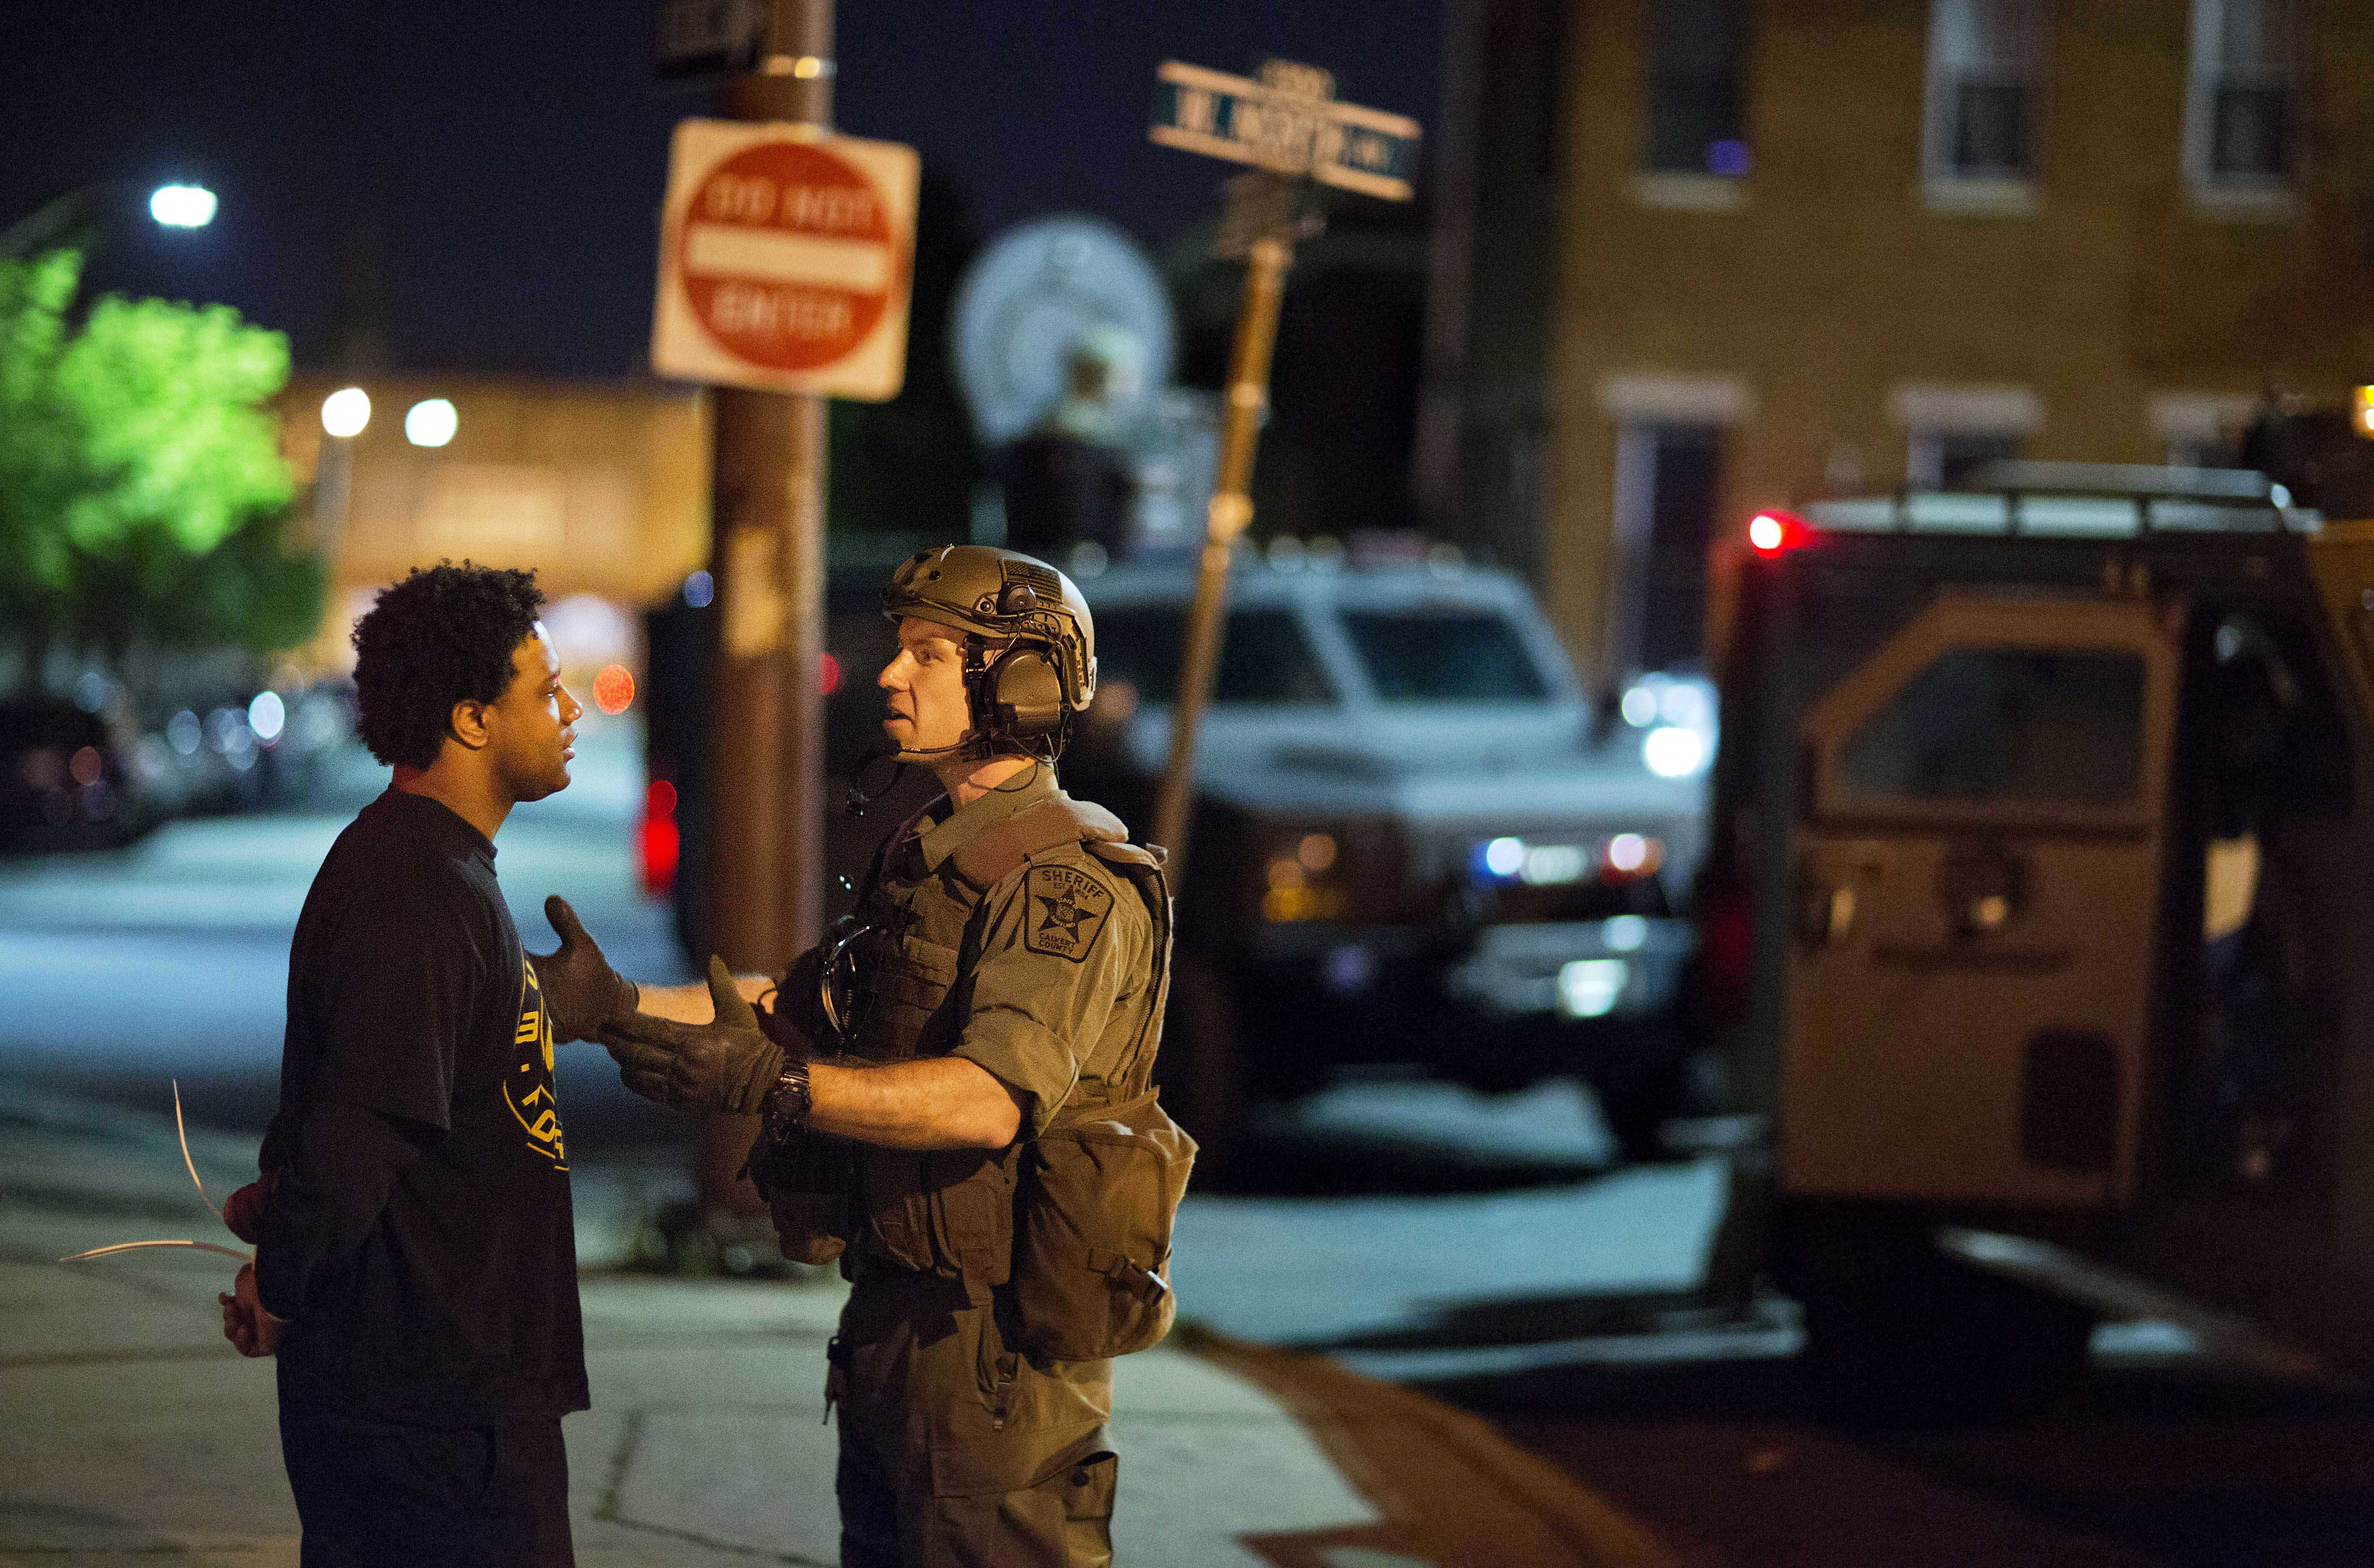 A man is arrested for violating the curfew Tuesday, April 28, 2015, in Baltimore. A line of police behind riot shields hurled smoke grenades and fired pepper balls at dozens of protesters to enforce a citywide curfew.